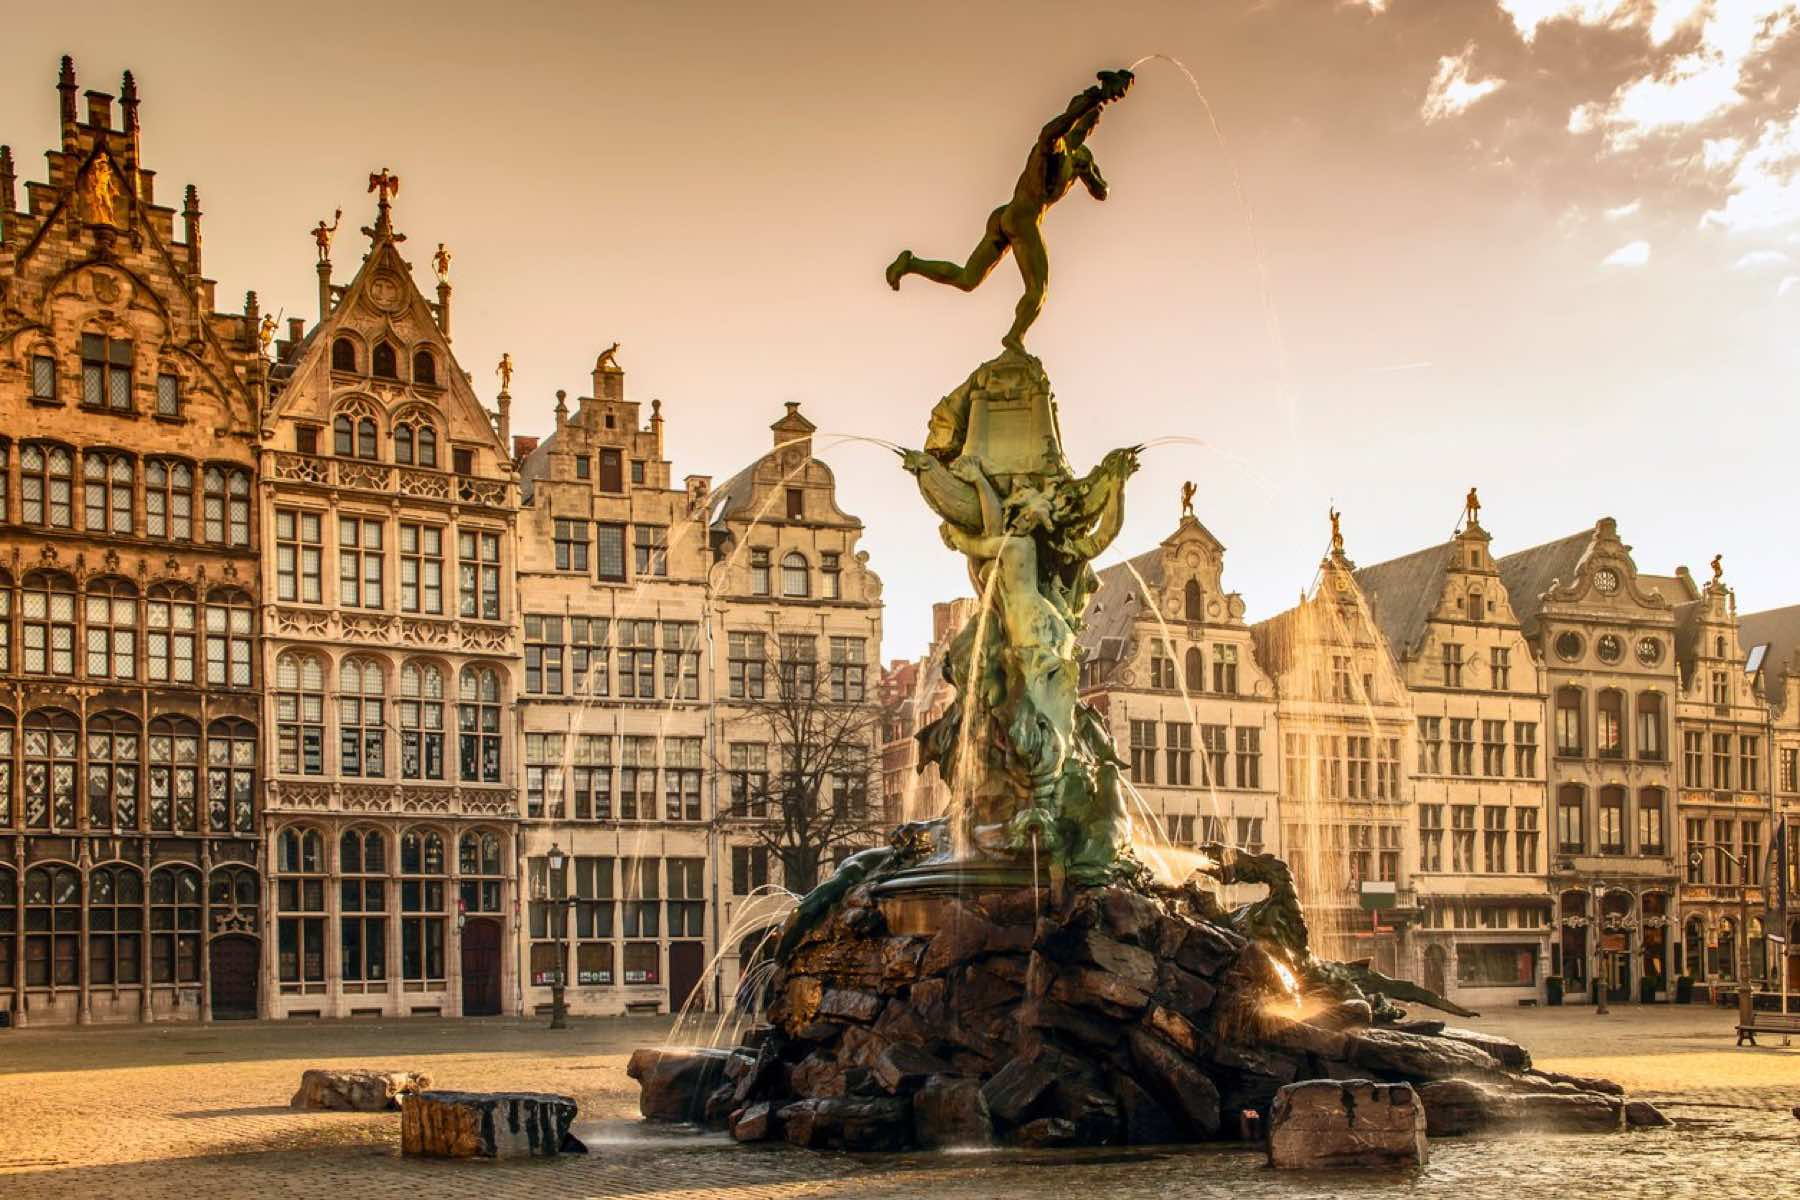 Antwerp Fountain